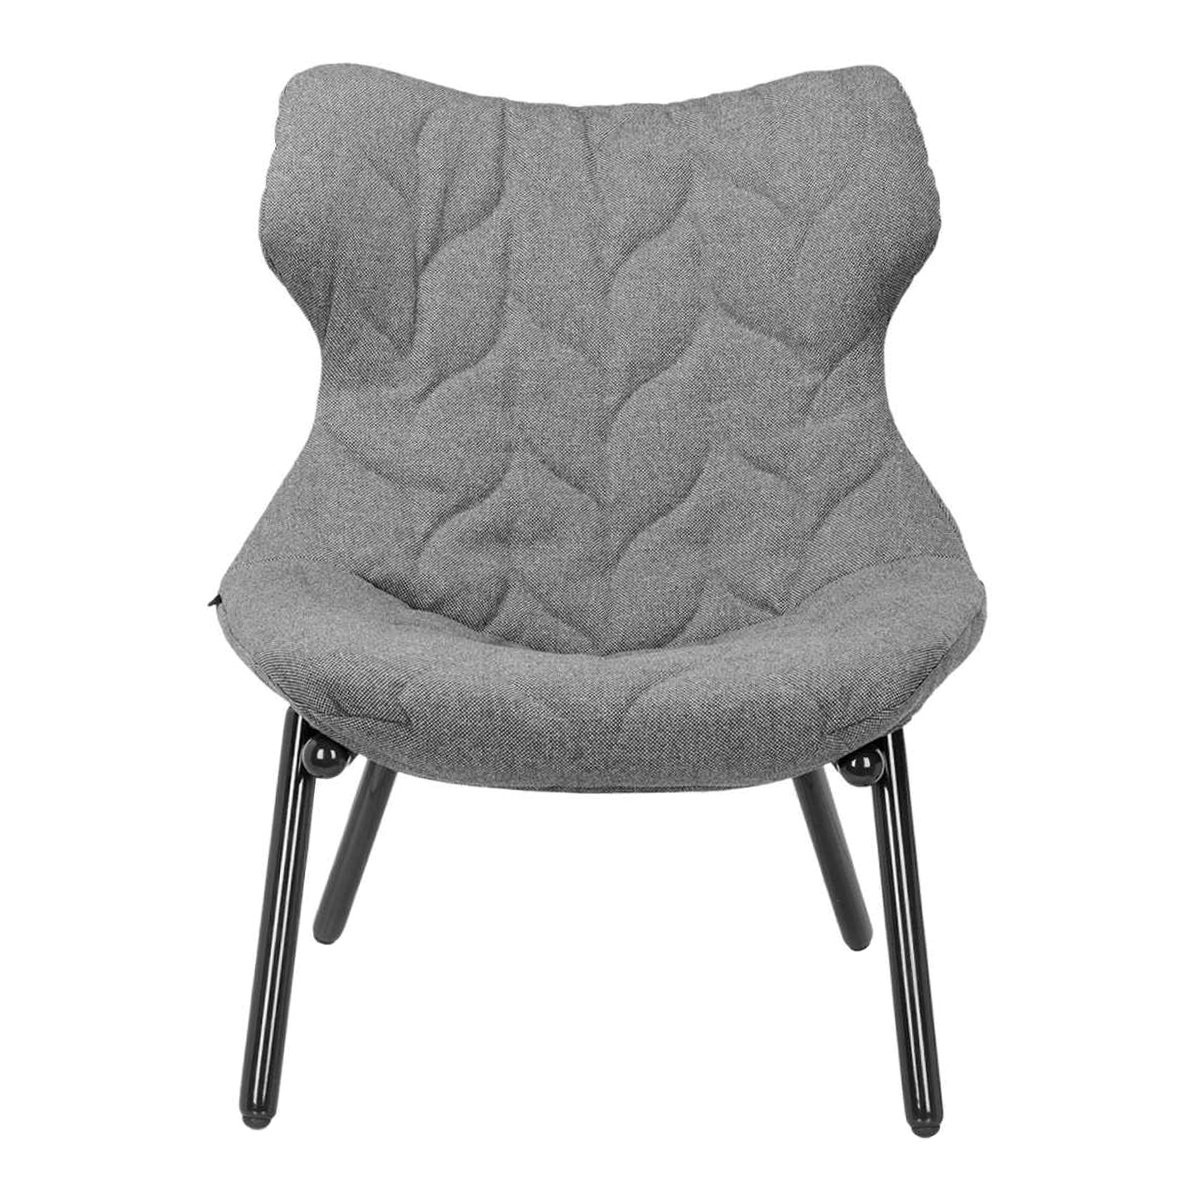 Foliage Fauteuil Kartell